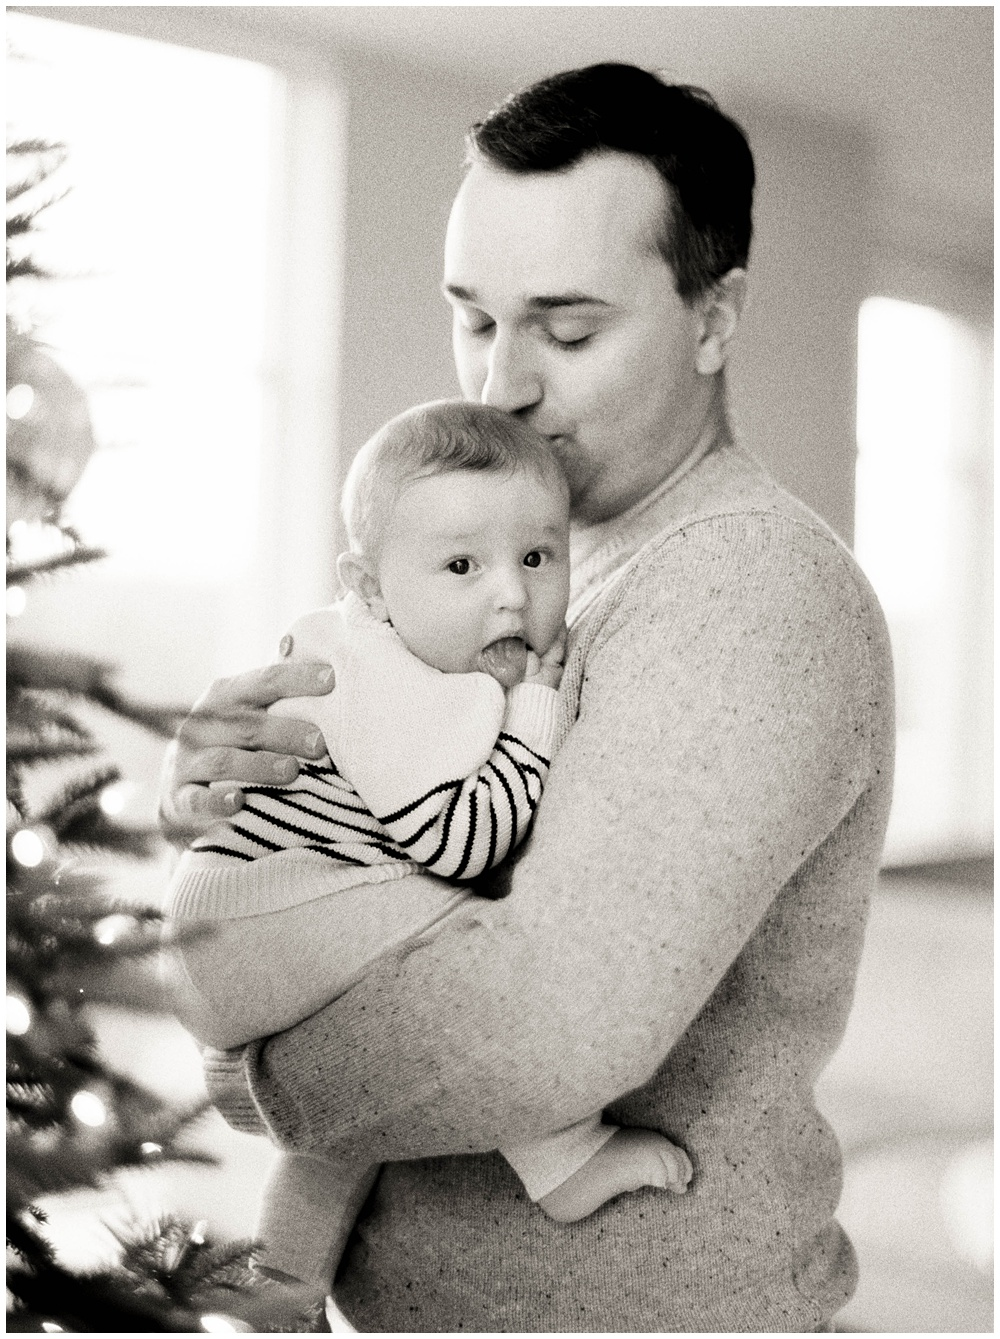 A cozy Christmas Session with the Montcalm Family   Fine Art Film Family Photographer   Seattle Family Photographer   Destination Family Photography   Sarah Carpenter Family Photography